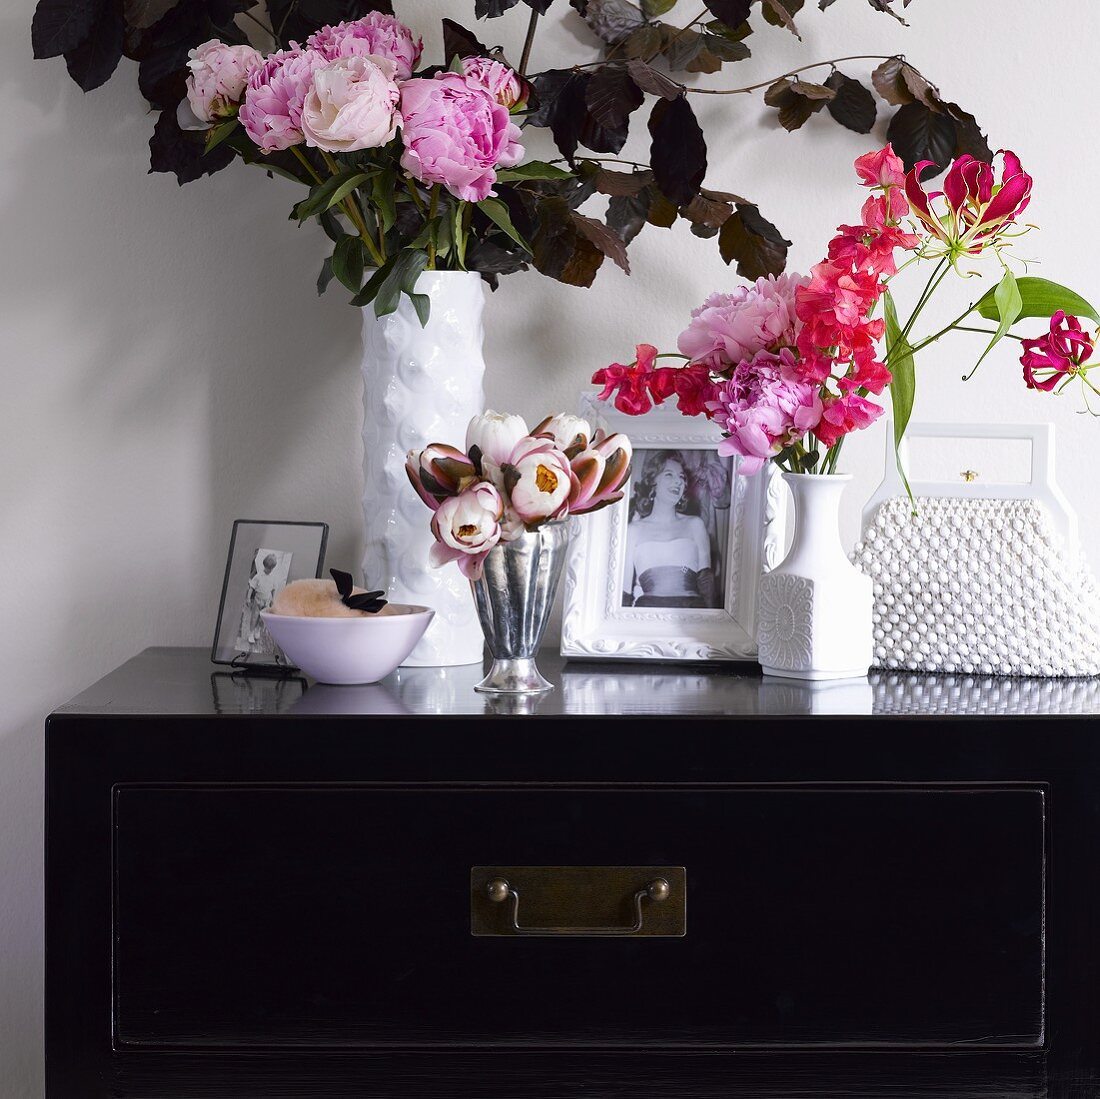 Vases of flowers, photos and handbag on black chest of drawers